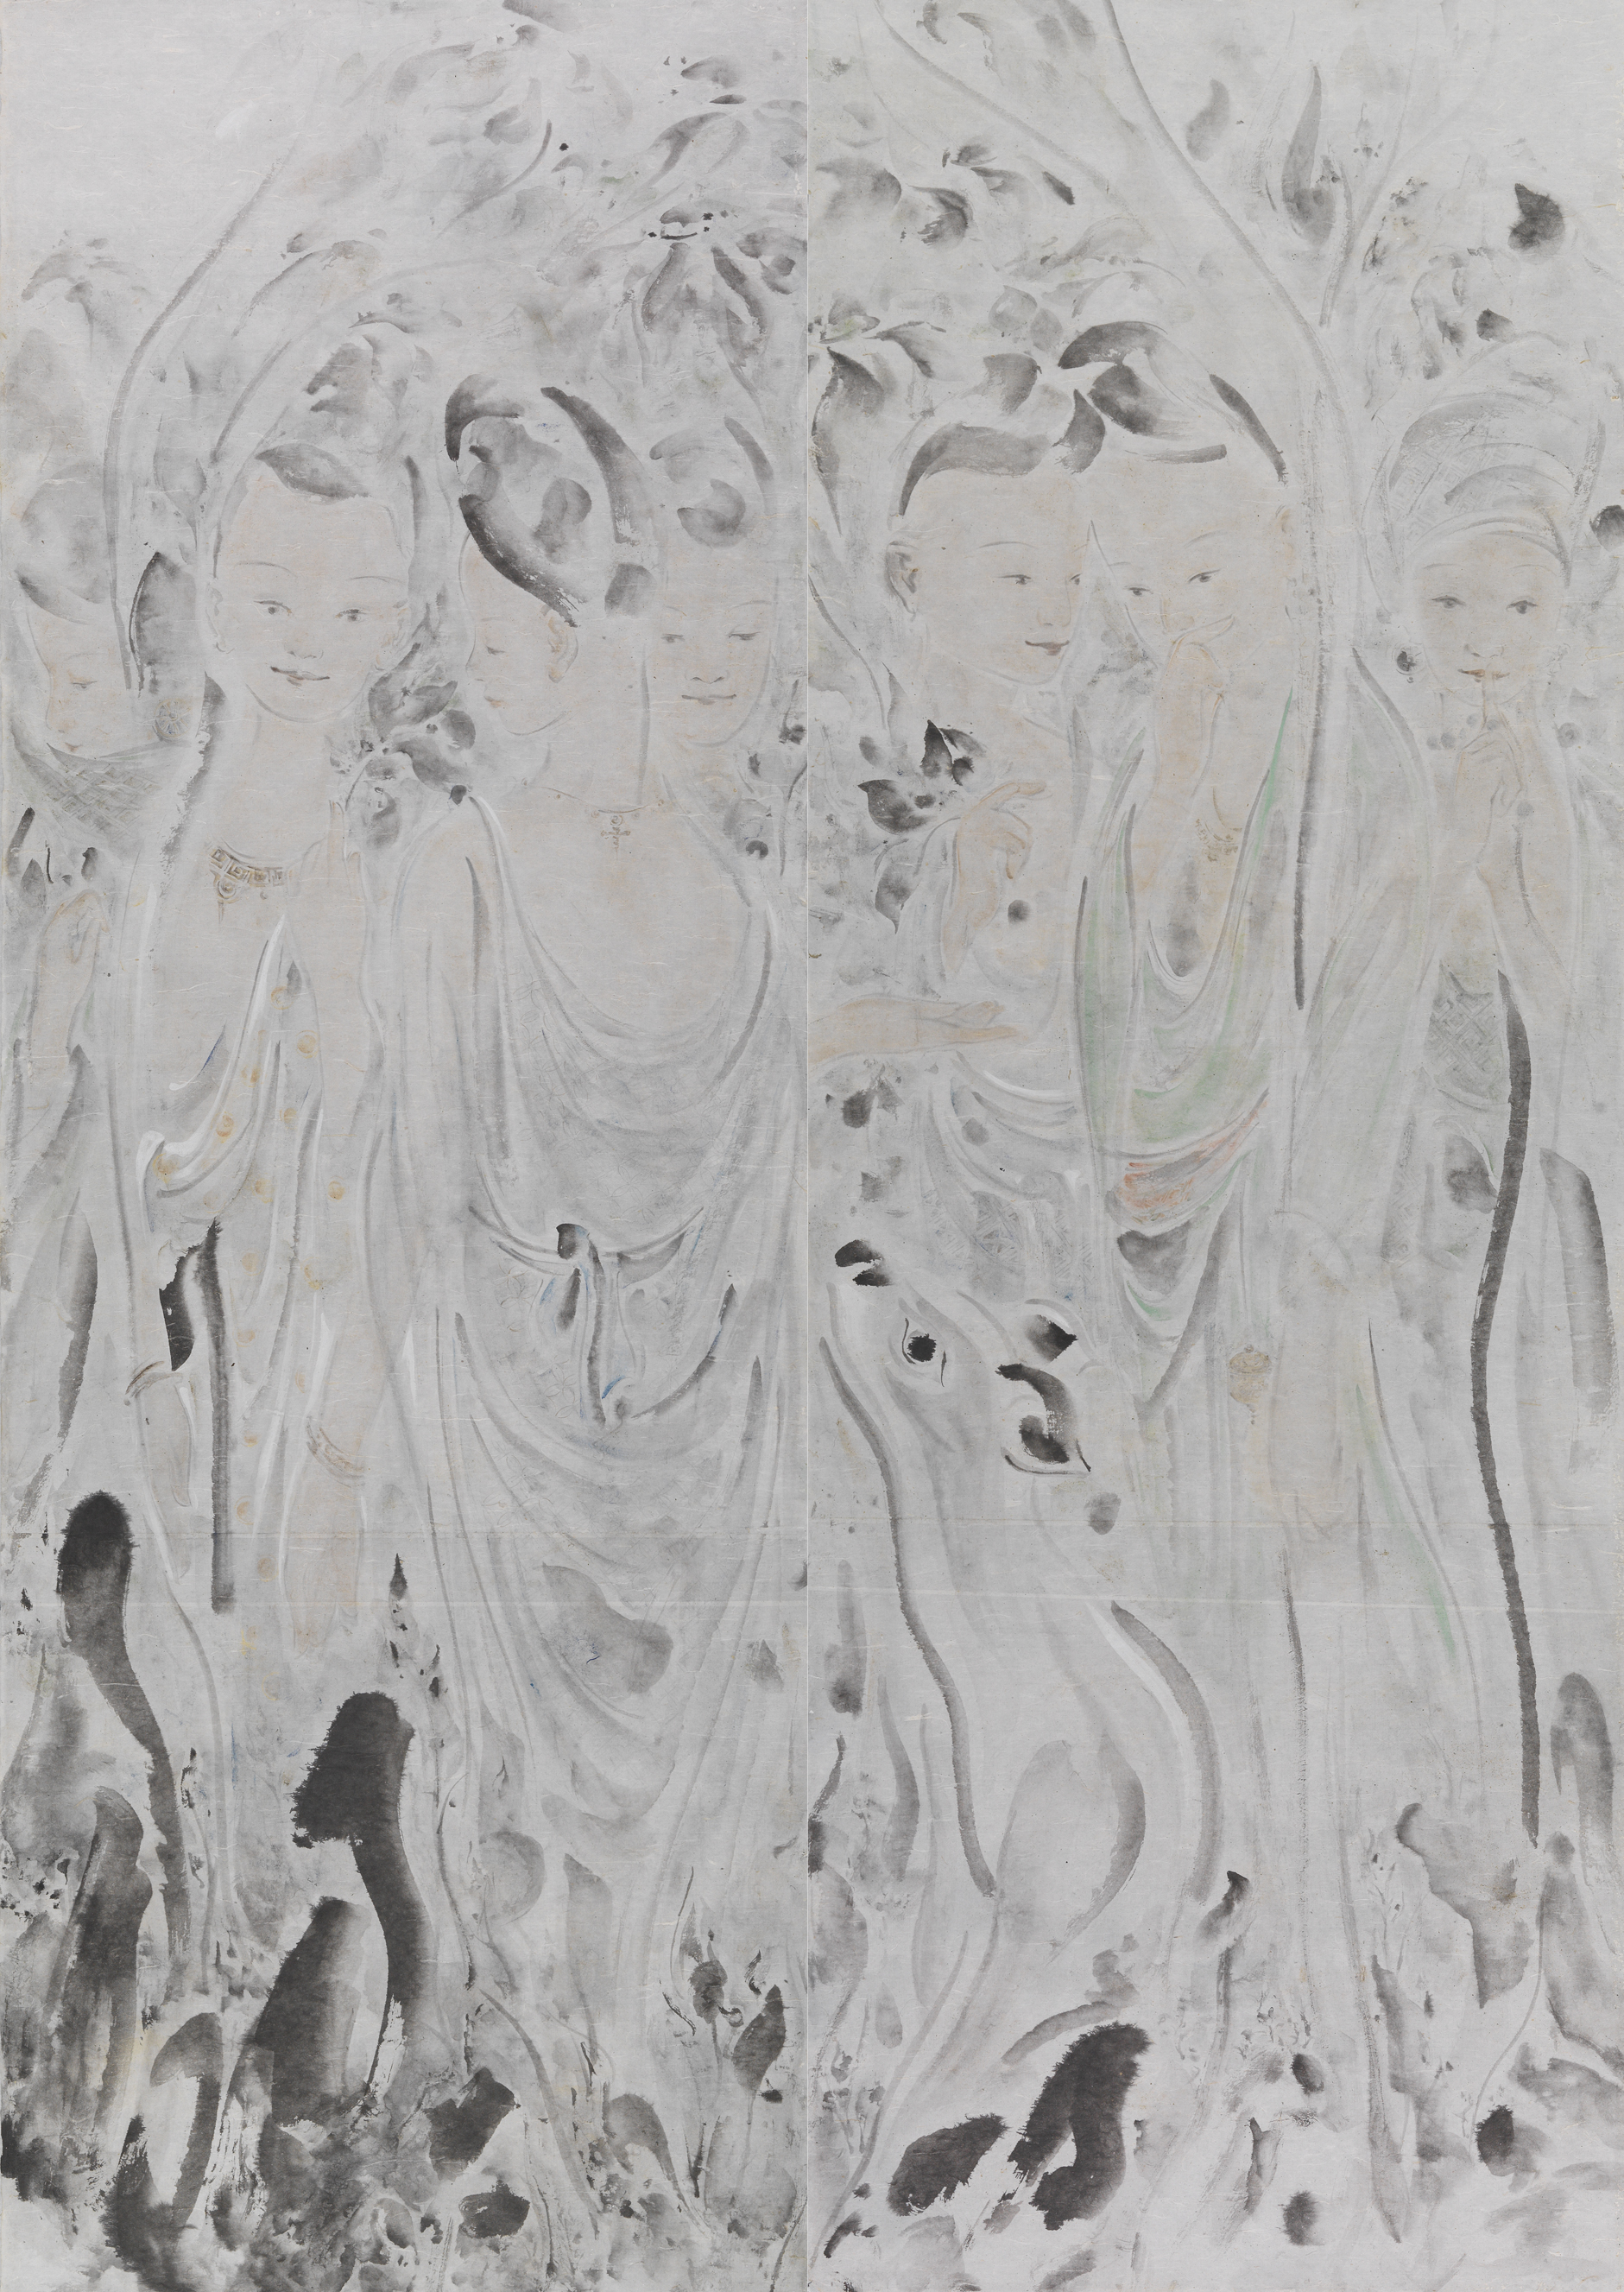 Pan Wenxun 潘汶汛, Spring in the Deer Park 春在野鹿苑, 2011, Chinese ink and mineral color on rice paper 纸本水墨设色, 210 x 150 cm